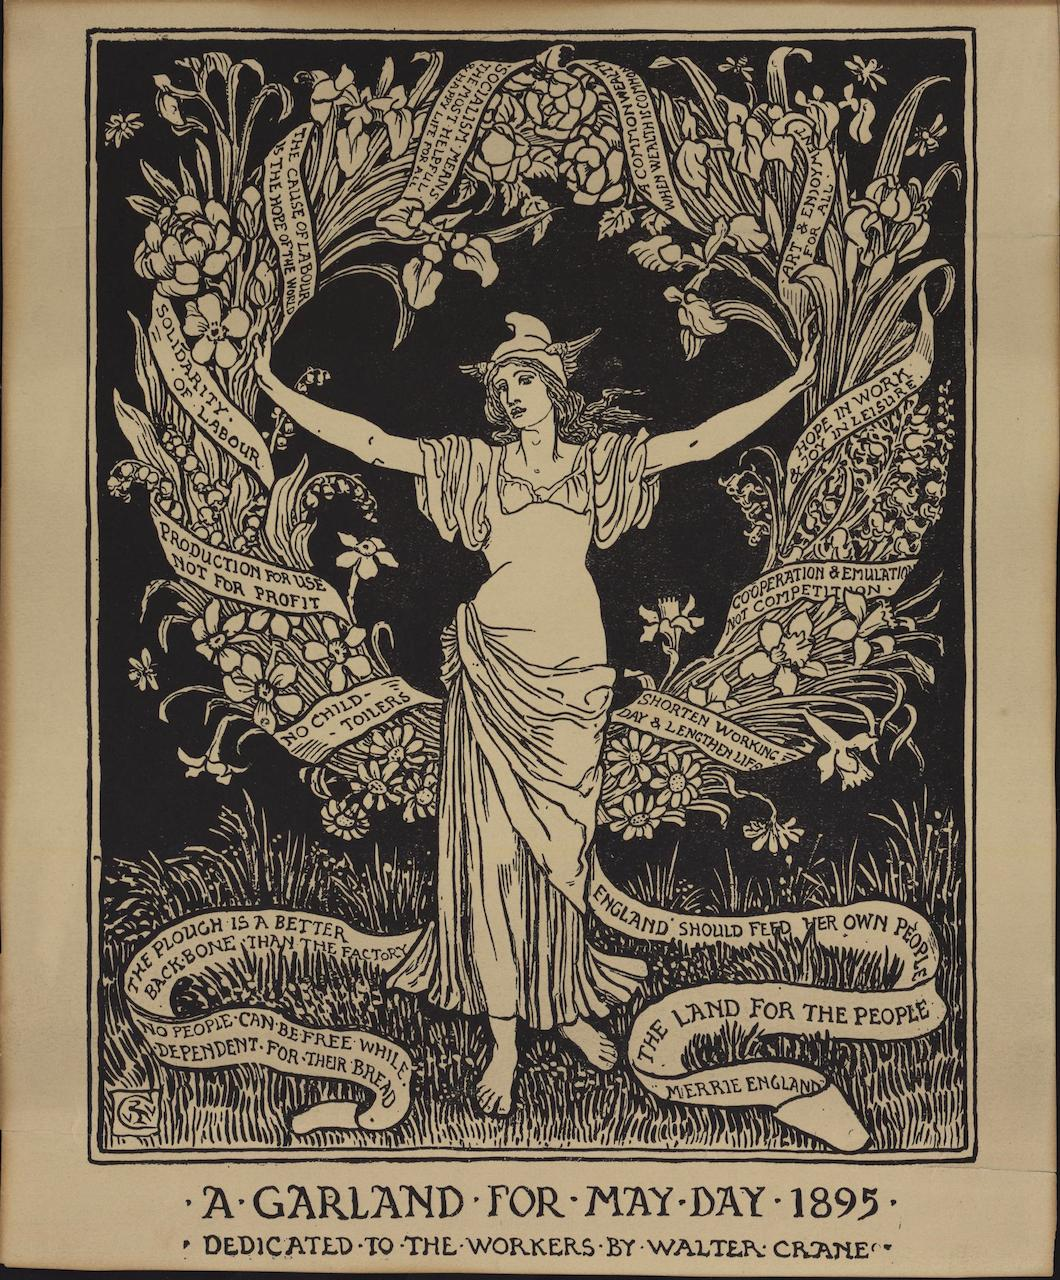 Crane, W. A Garland for May Day 1895, 1895. Izvor:  http://tinyurl.com/nzntjyx